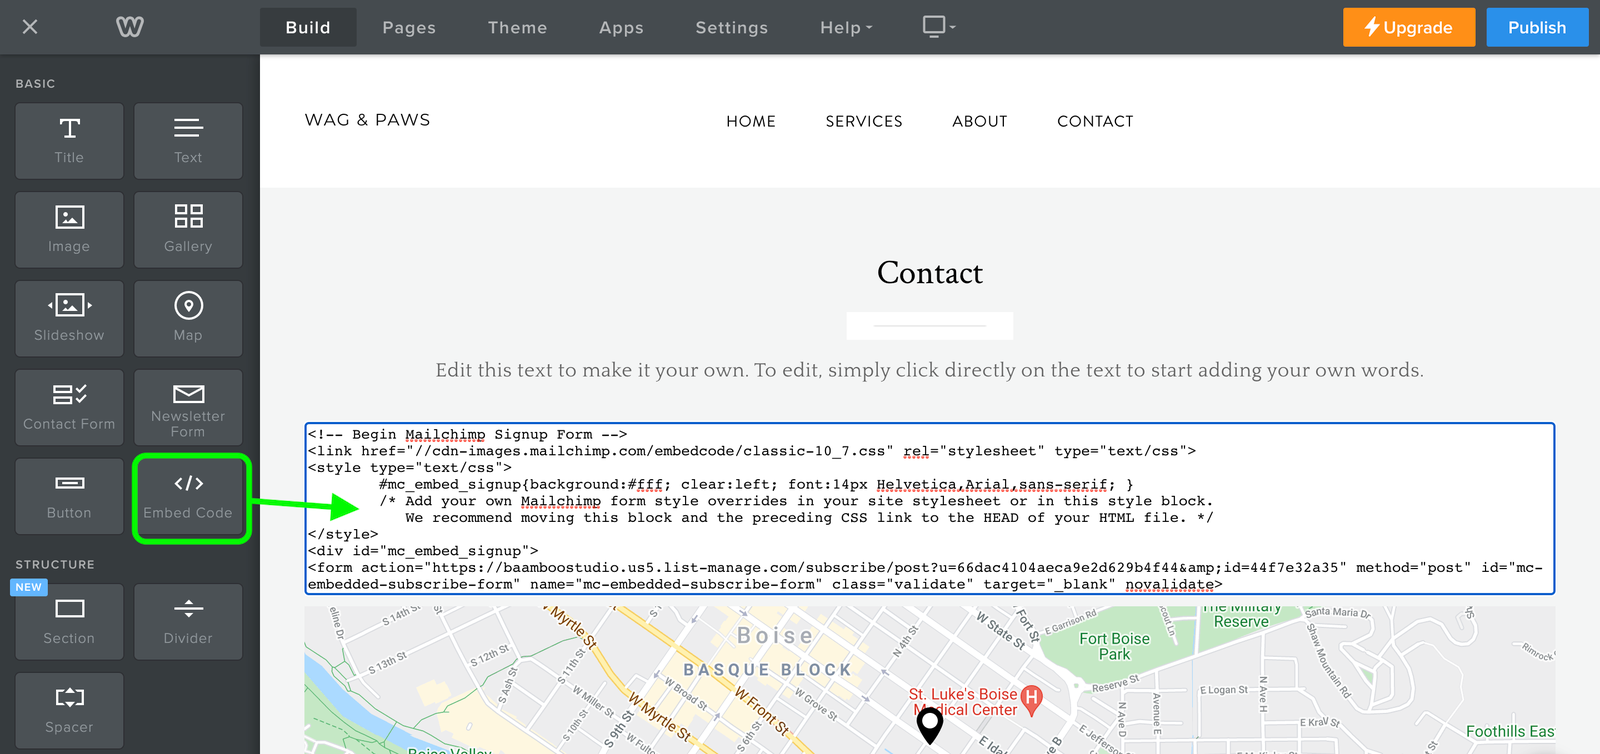 Step 3 - Paste the embedded code into a Weebly page